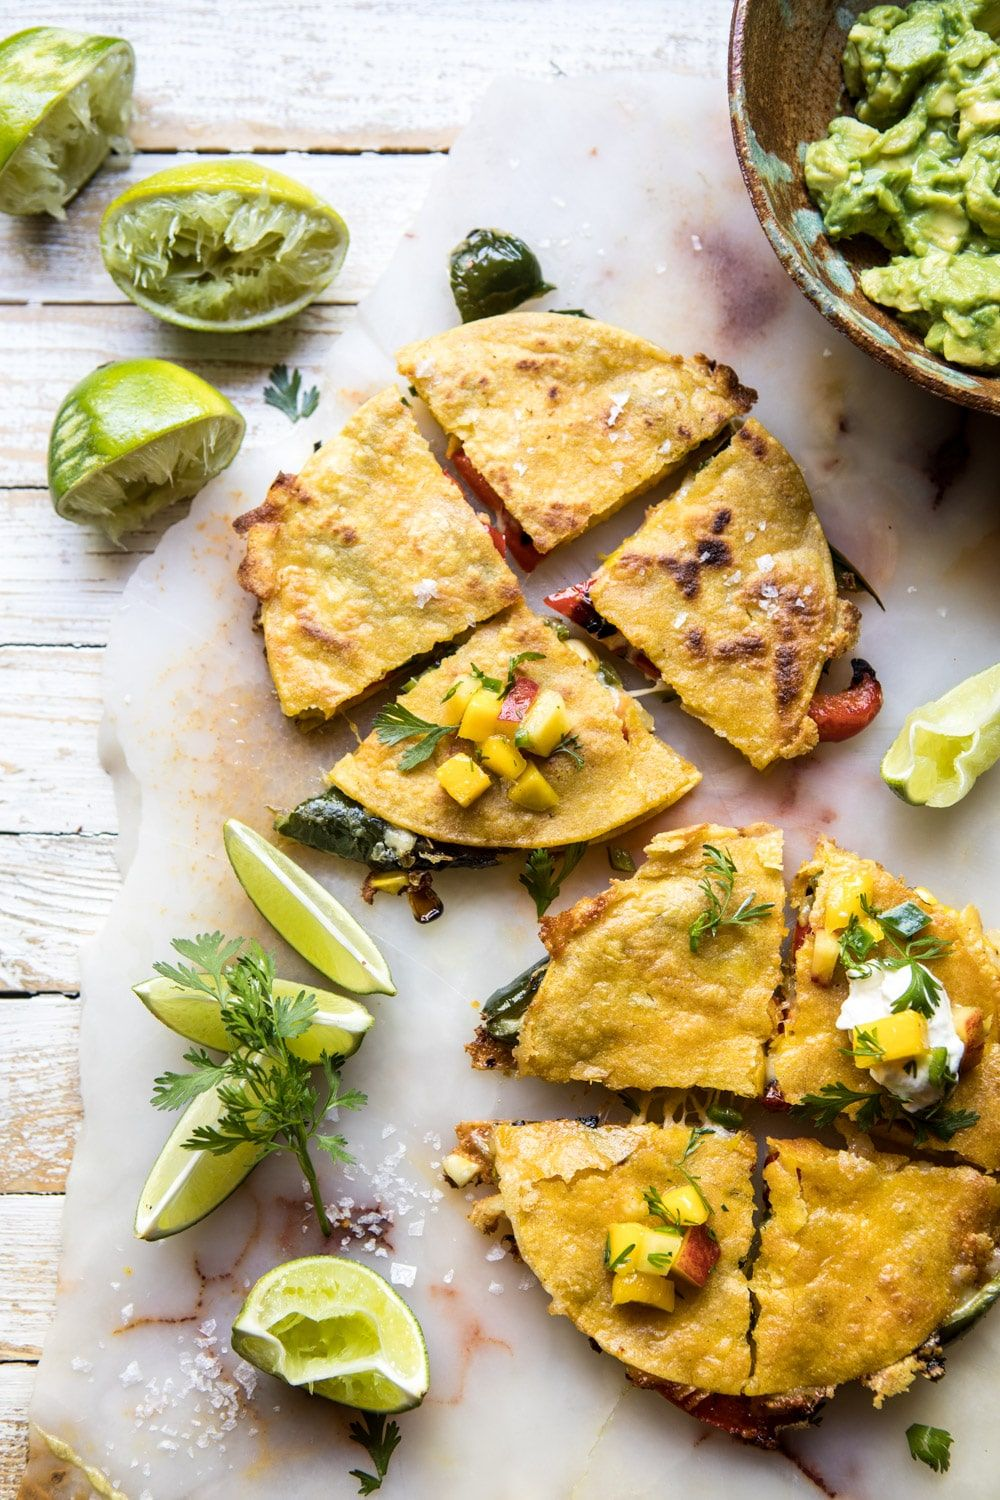 Grilled Vegetable and Cheese Quesadillas with Mango Salsa Grilled Vegetable and Cheese Quesadillas with Mango Salsa |  recipe